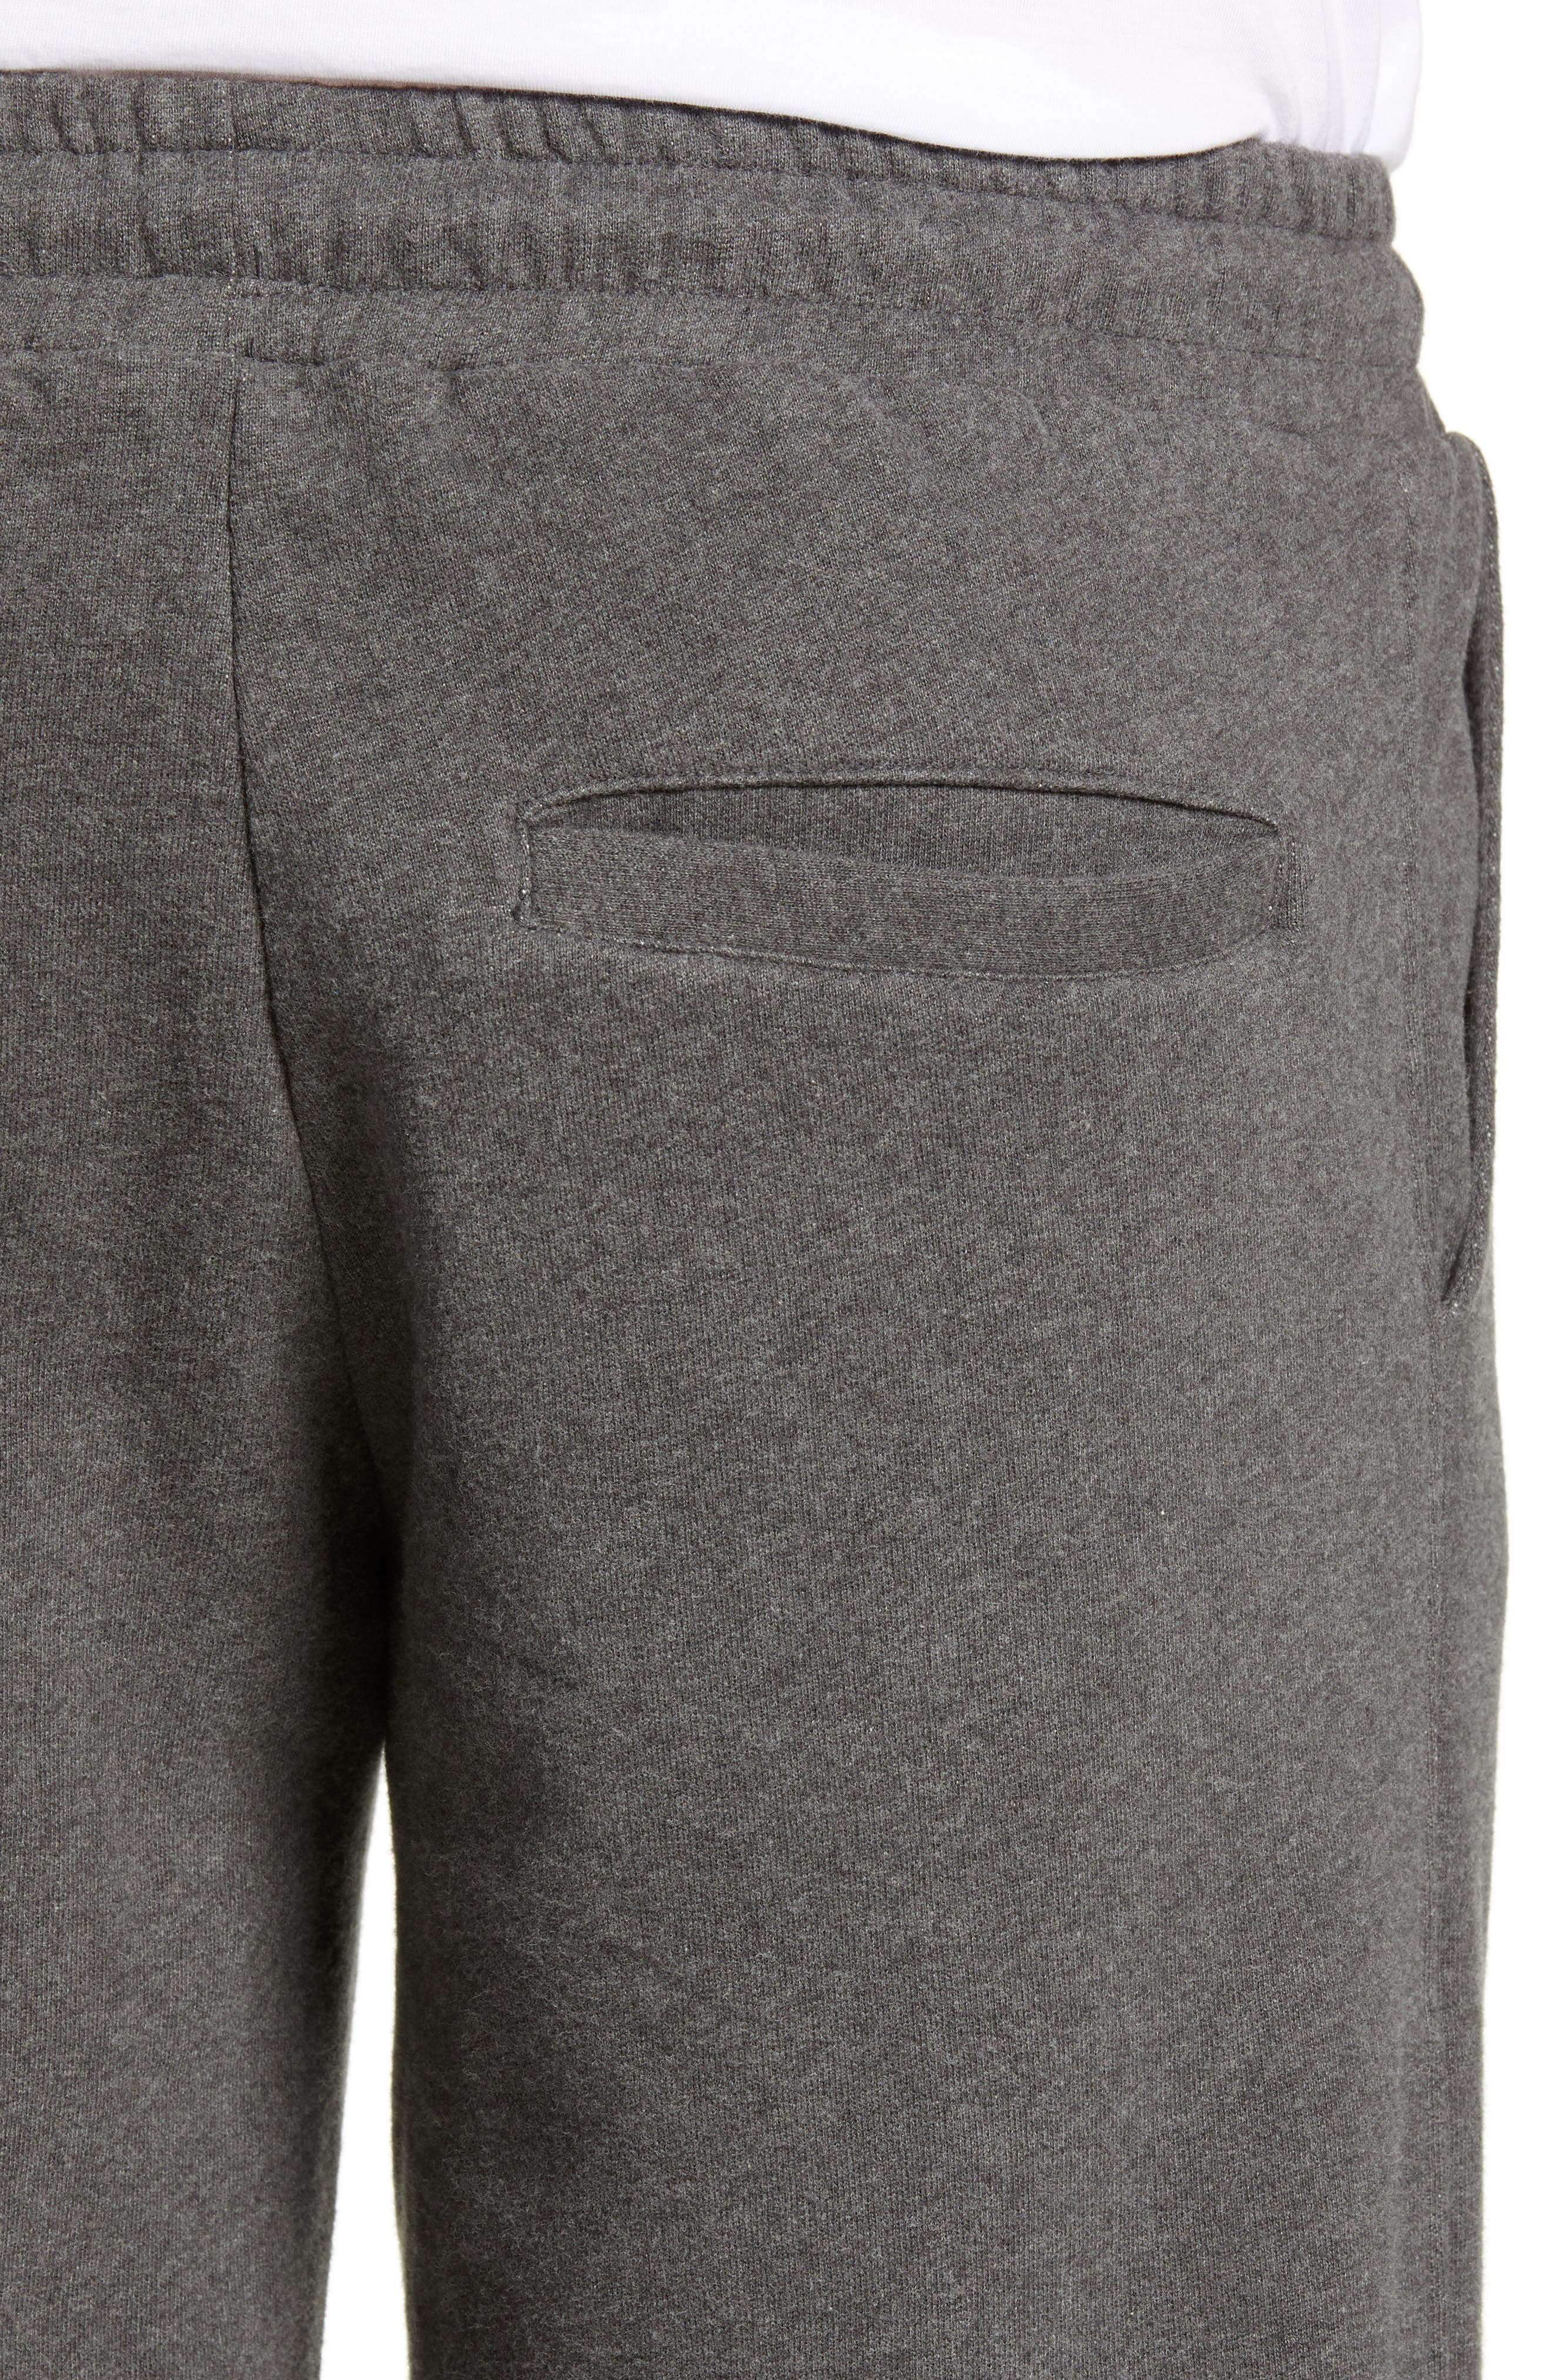 KnowledgeCotton Mélange Sweatpants,                             Alternate thumbnail 4, color,                             GREY MELANGE